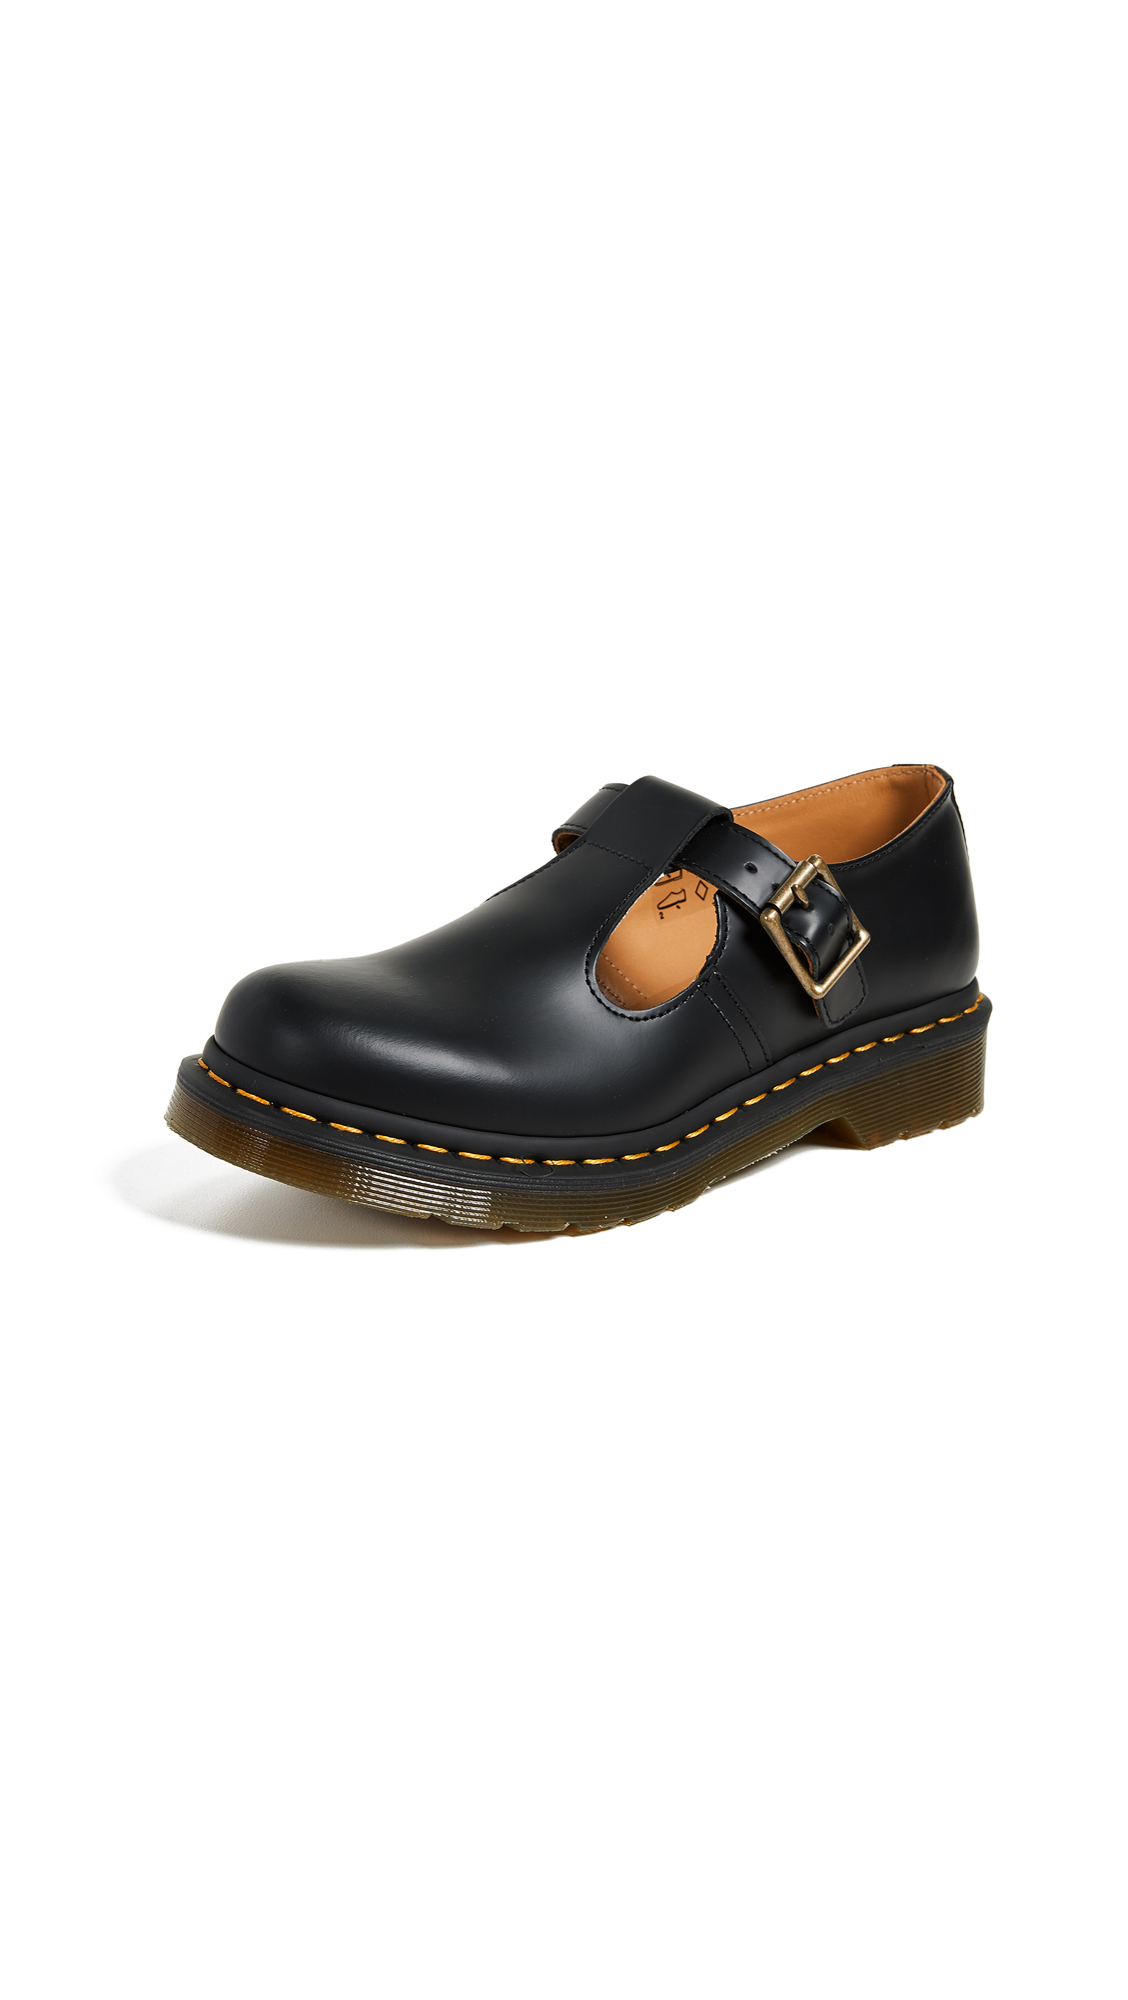 Buy Dr. Martens Polley T Bar Shoes online, shop Dr. Martens